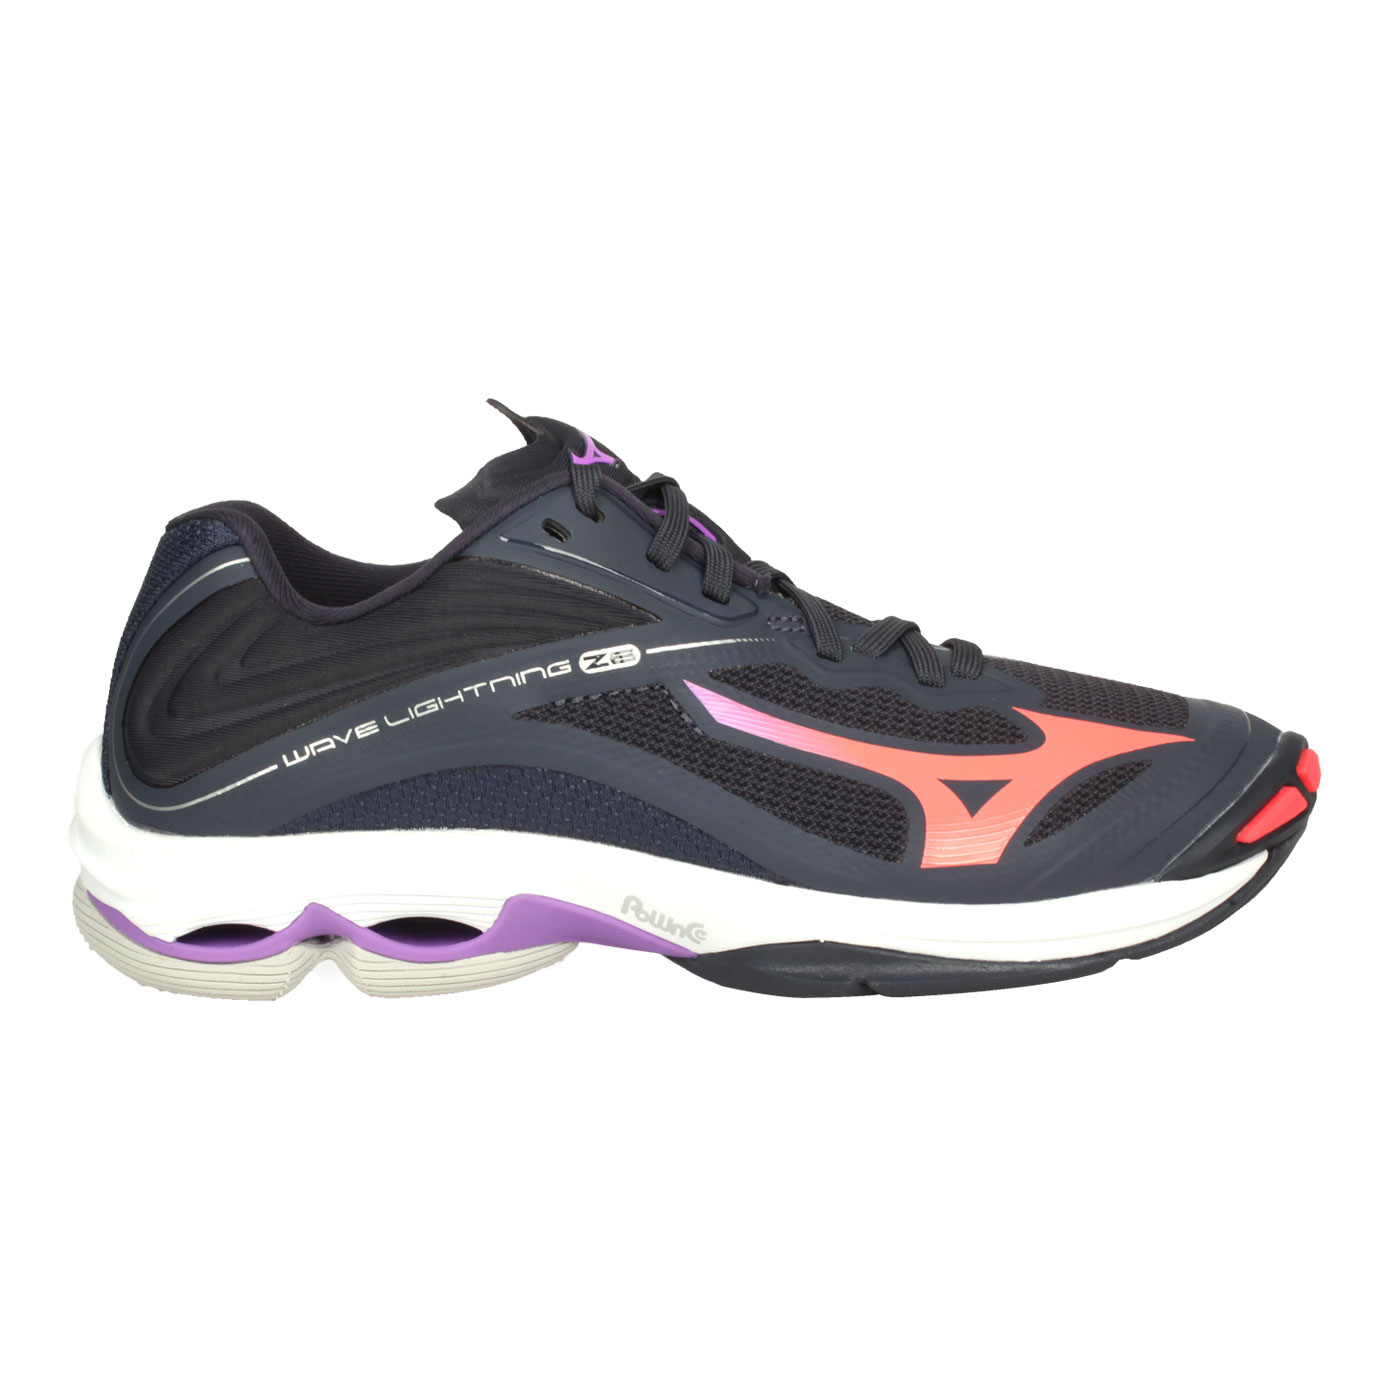 MIZUNO 女款排球鞋  @WAVE LIGHTNING Z6@V1GC200066